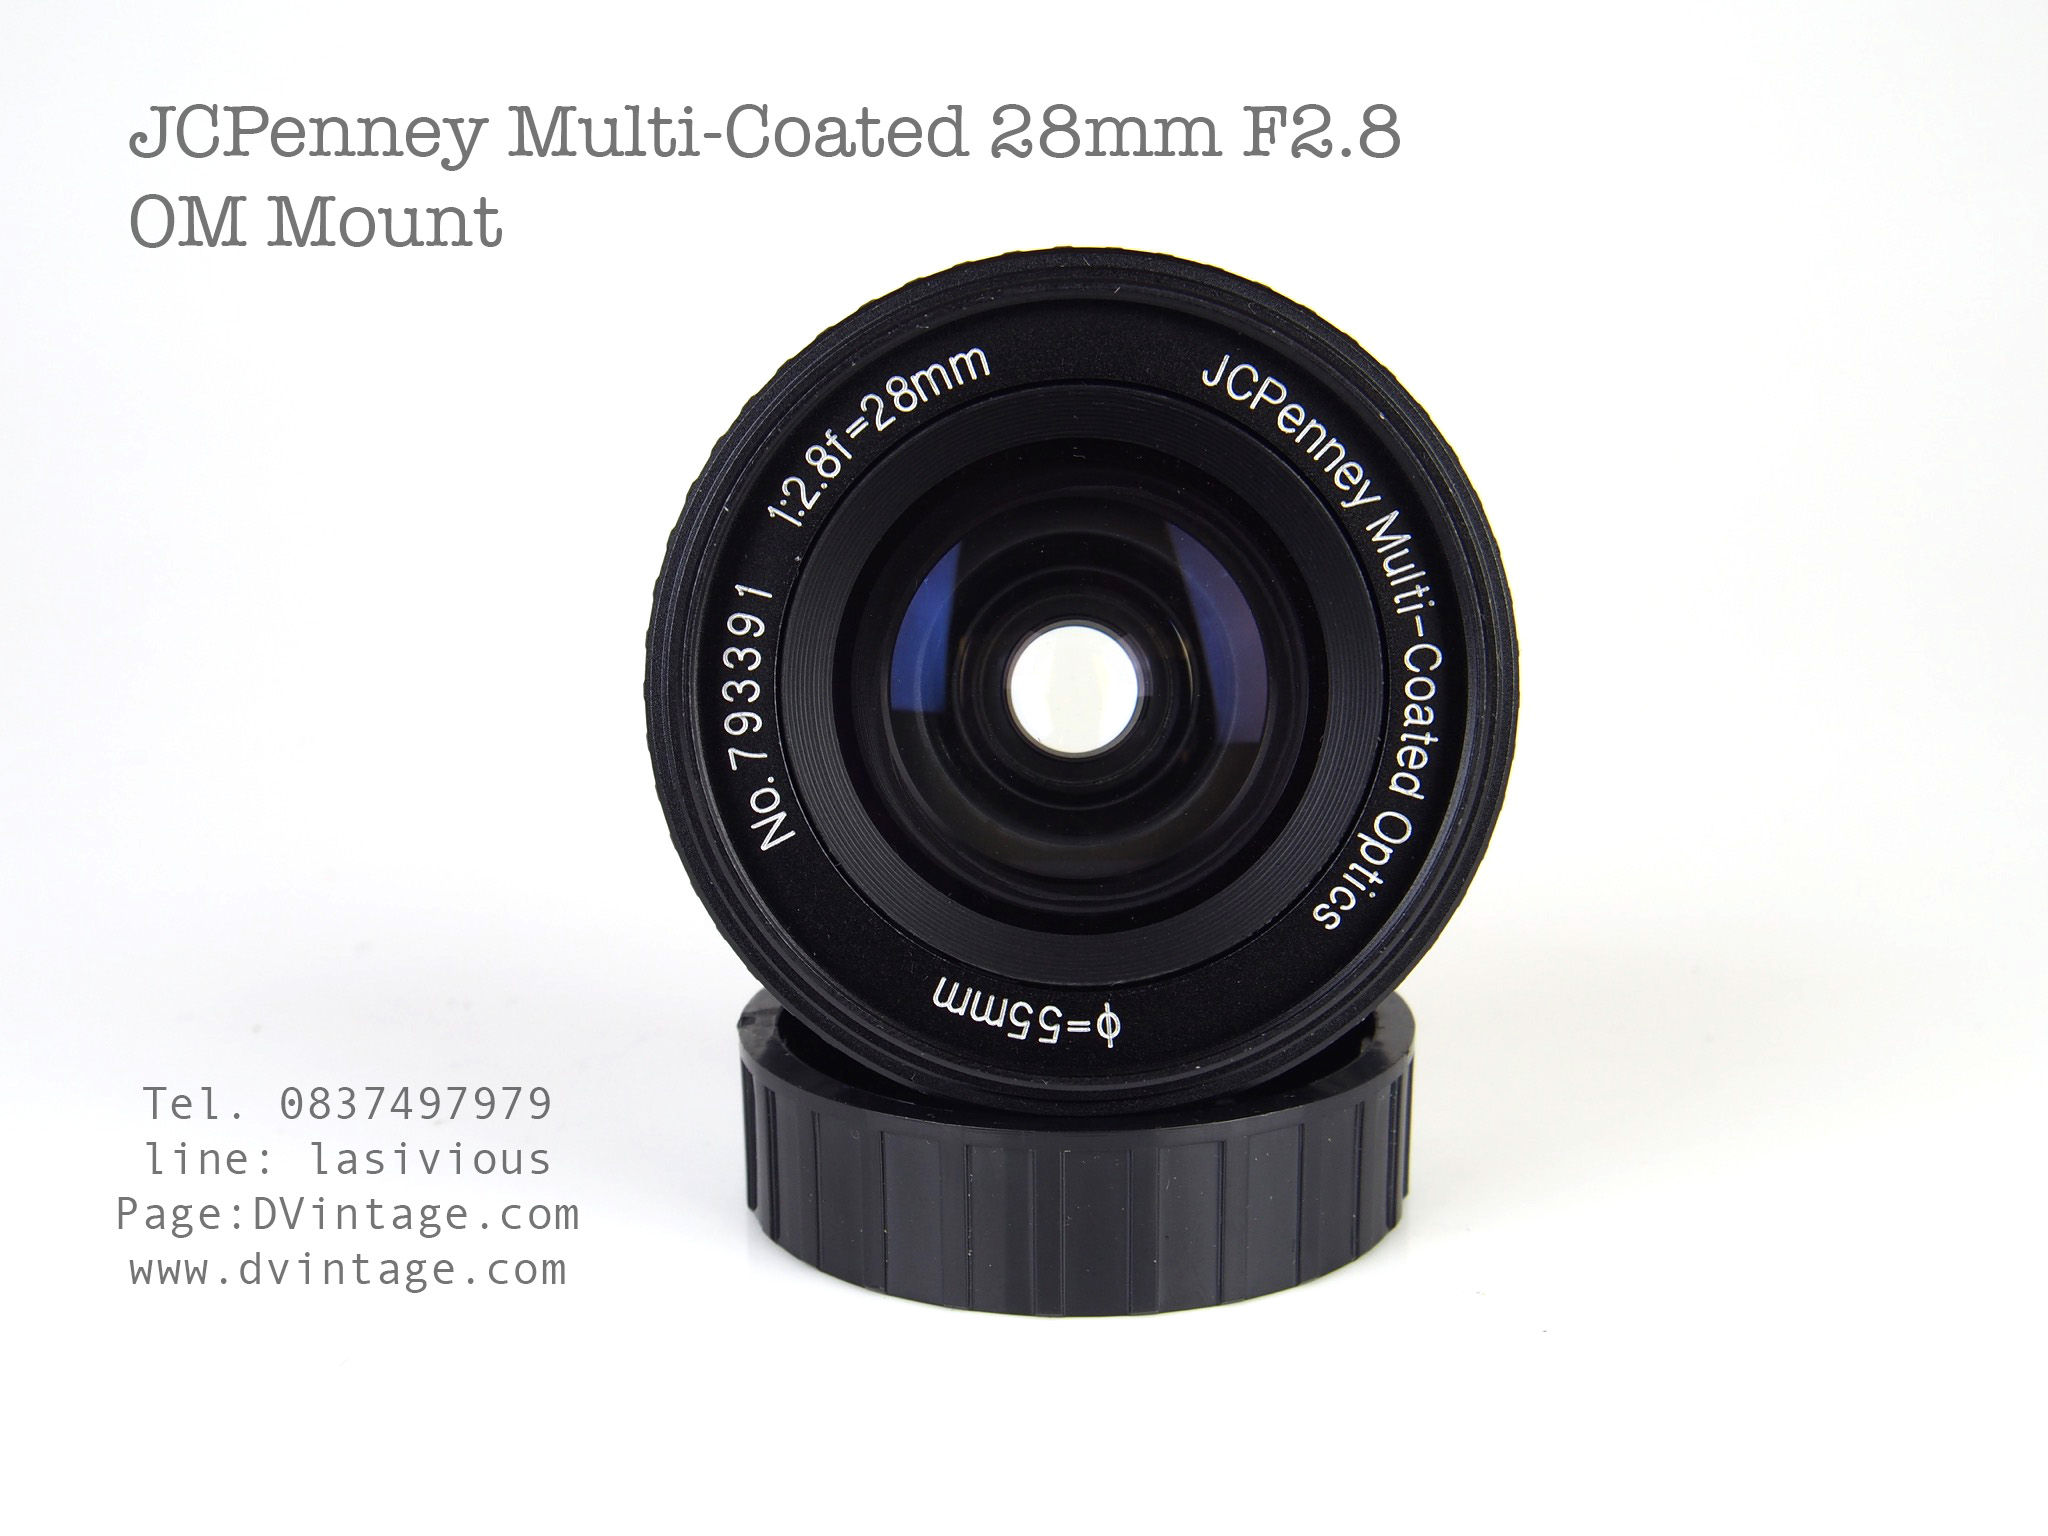 JCPenney Multi-Coated 28mm F2.8 OM Mount